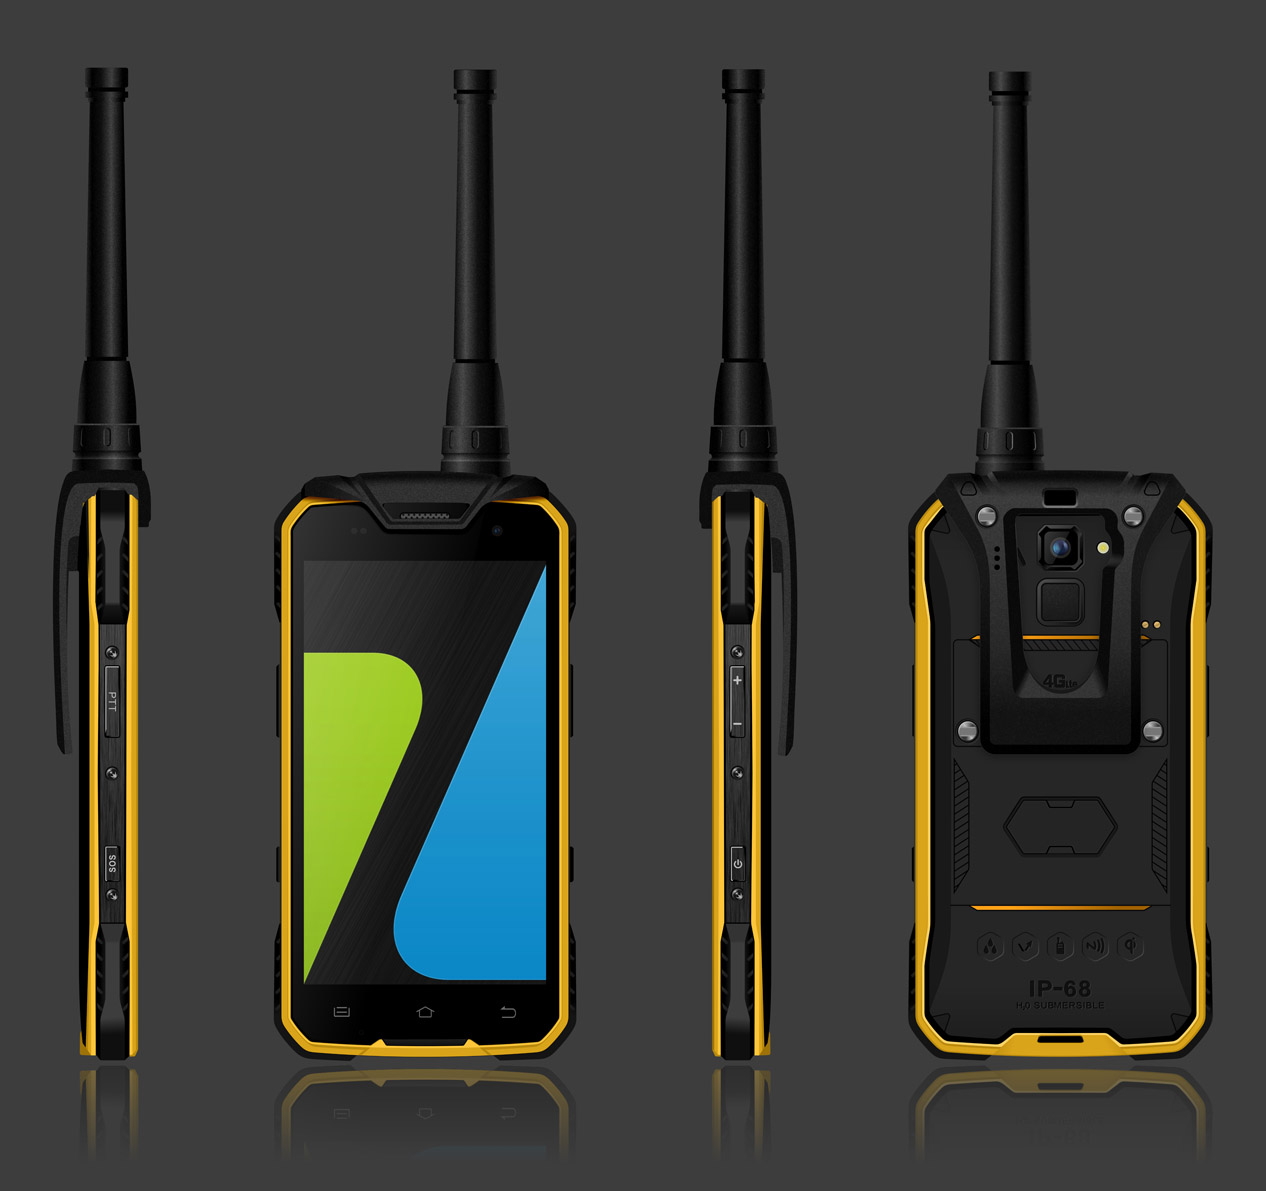 4.7 inch 4G NFC Octa Core Digital Walkie-Talkie Rugged phone or Rugged smartphone waterproof phone